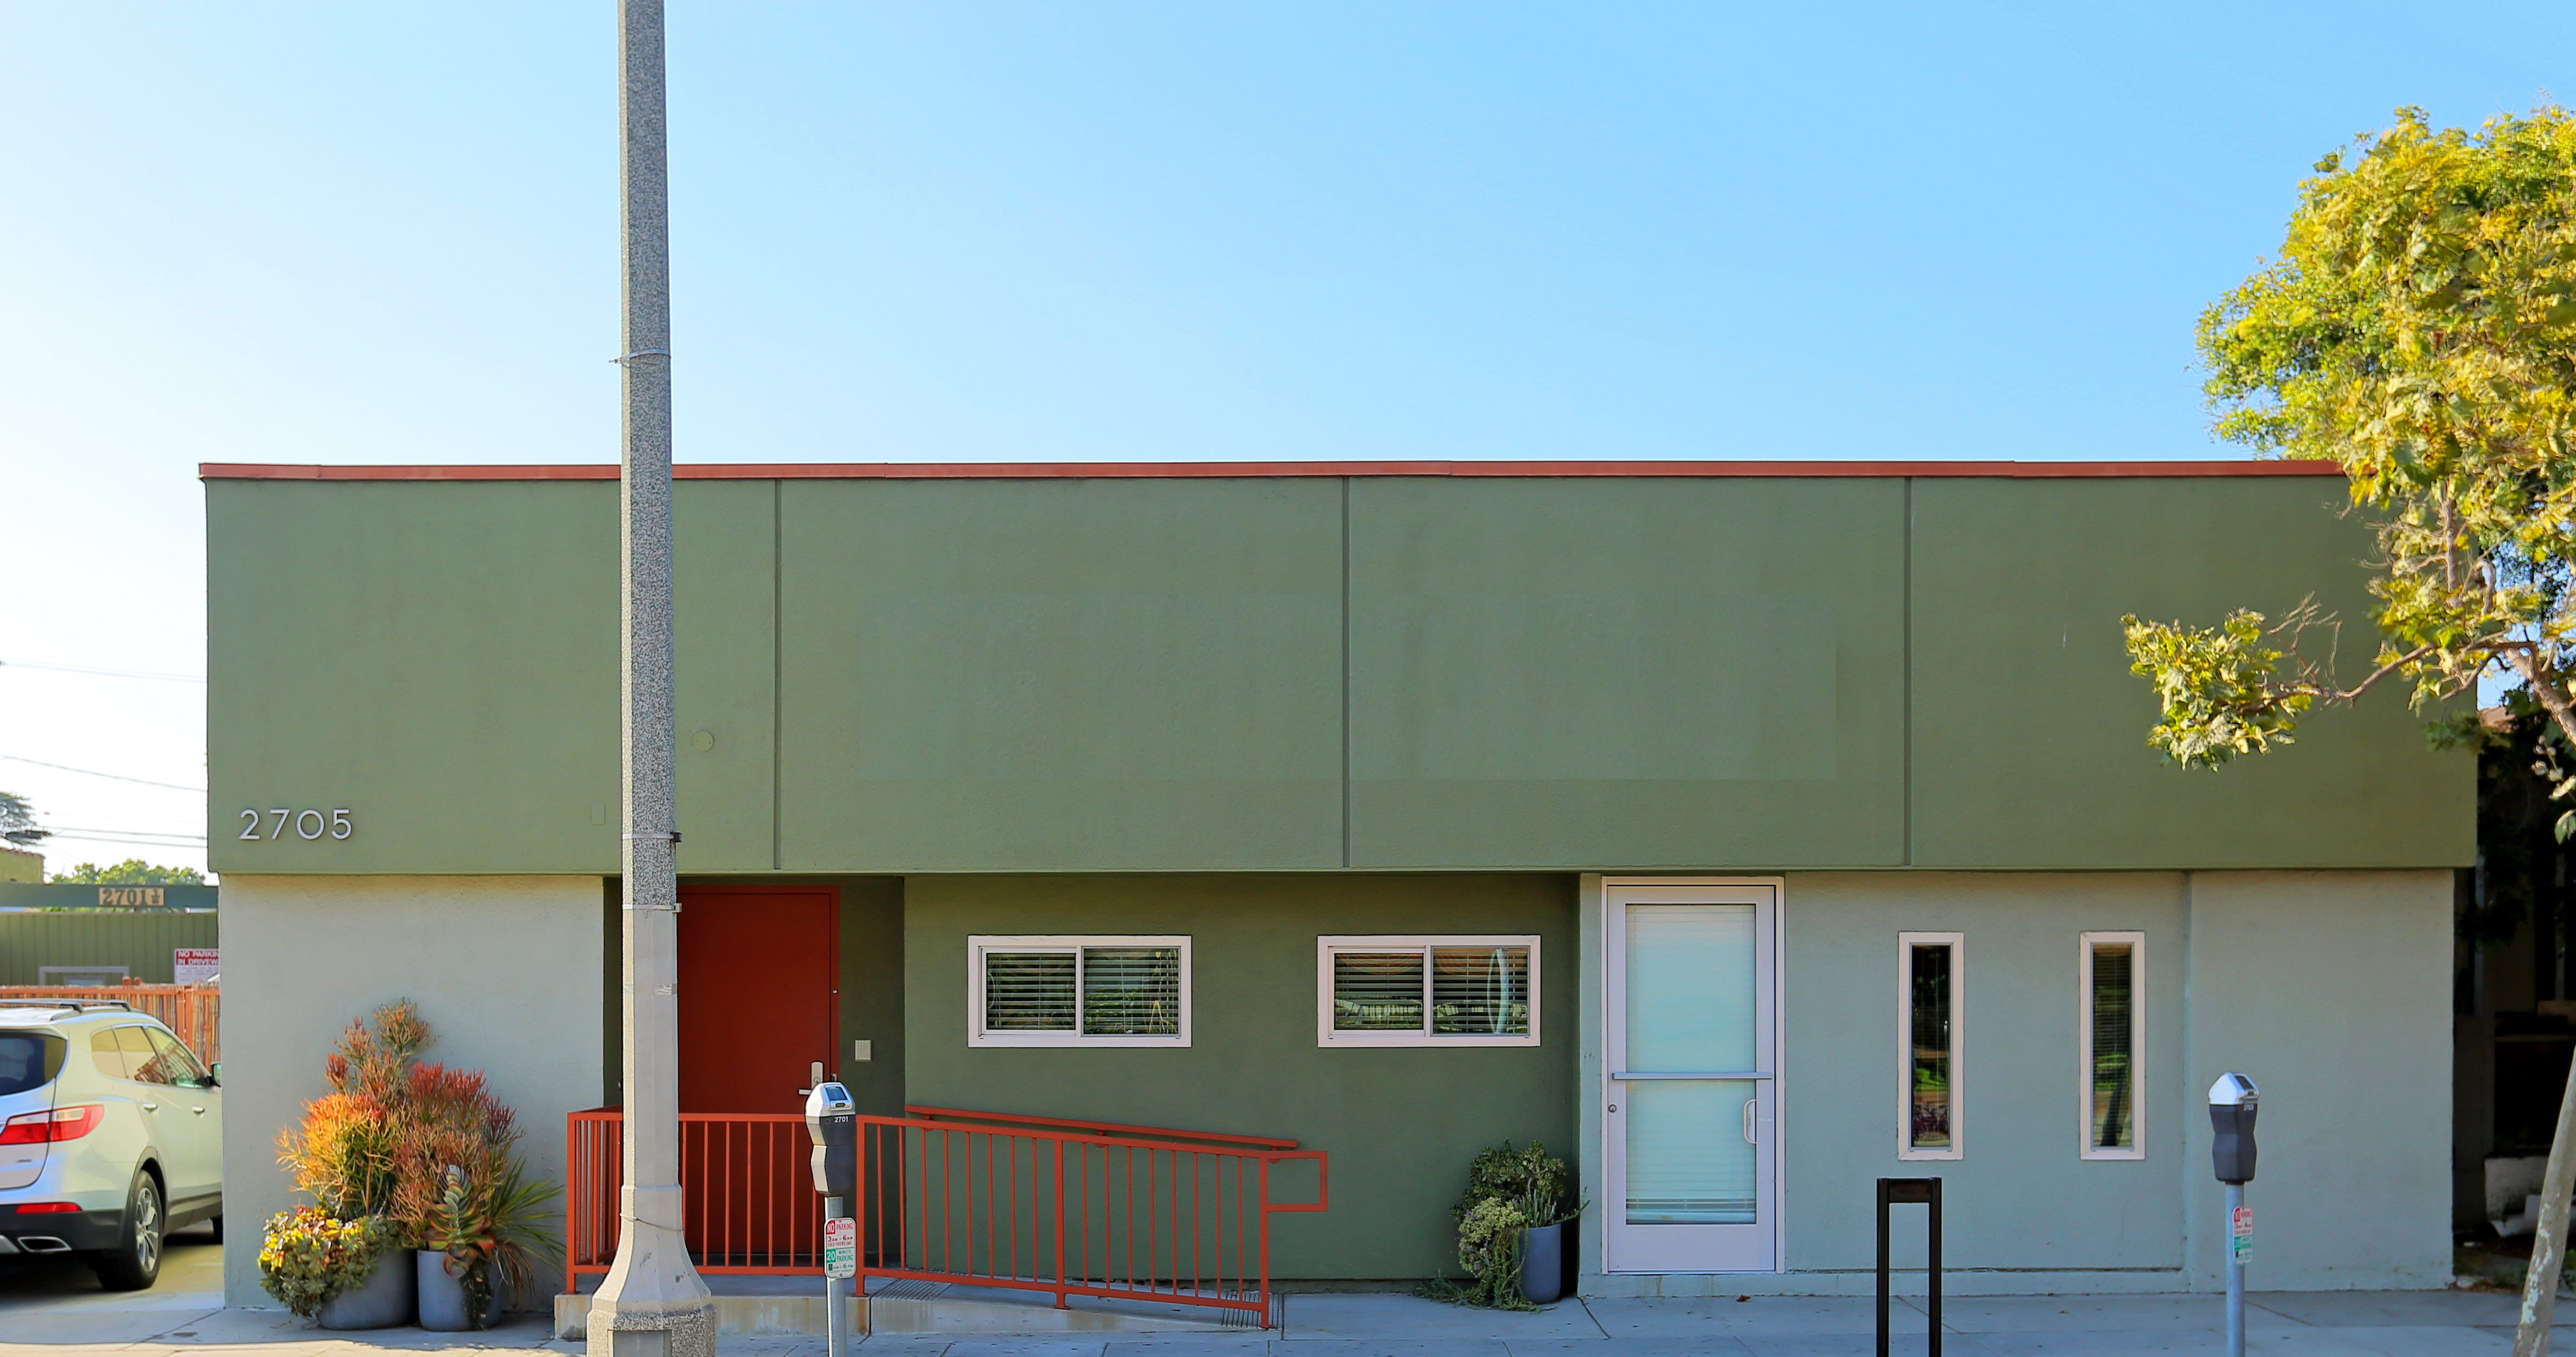 Los Angeles Mercial Real Estate For Sale And Lease Los